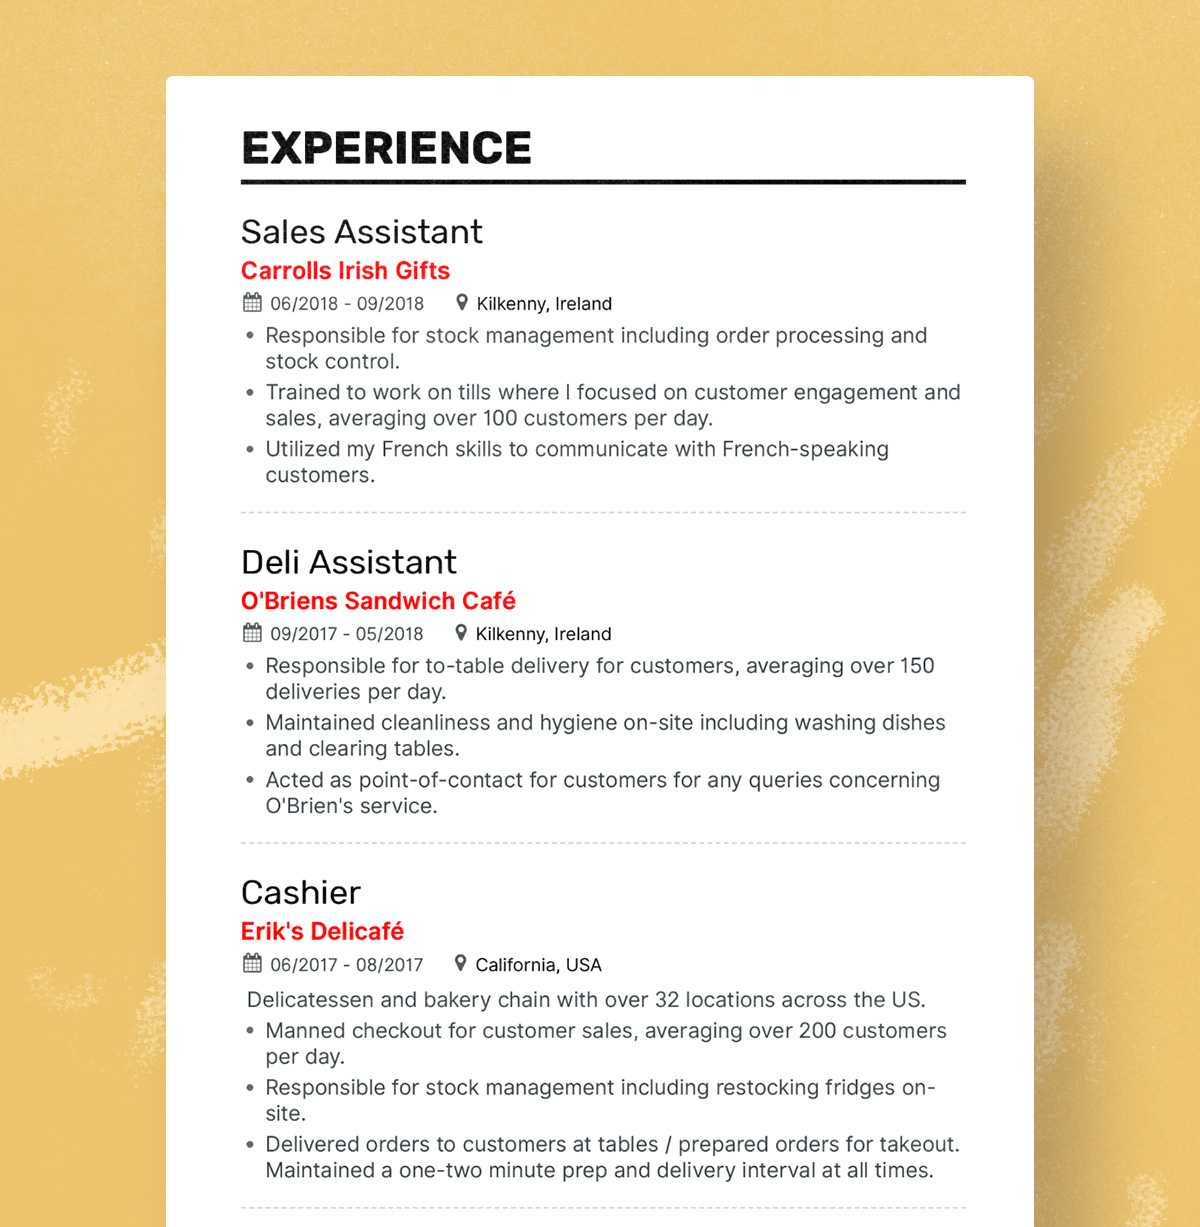 the best fresher resume formats and samples standard format for freshers hannah Resume Standard Resume Format For Freshers